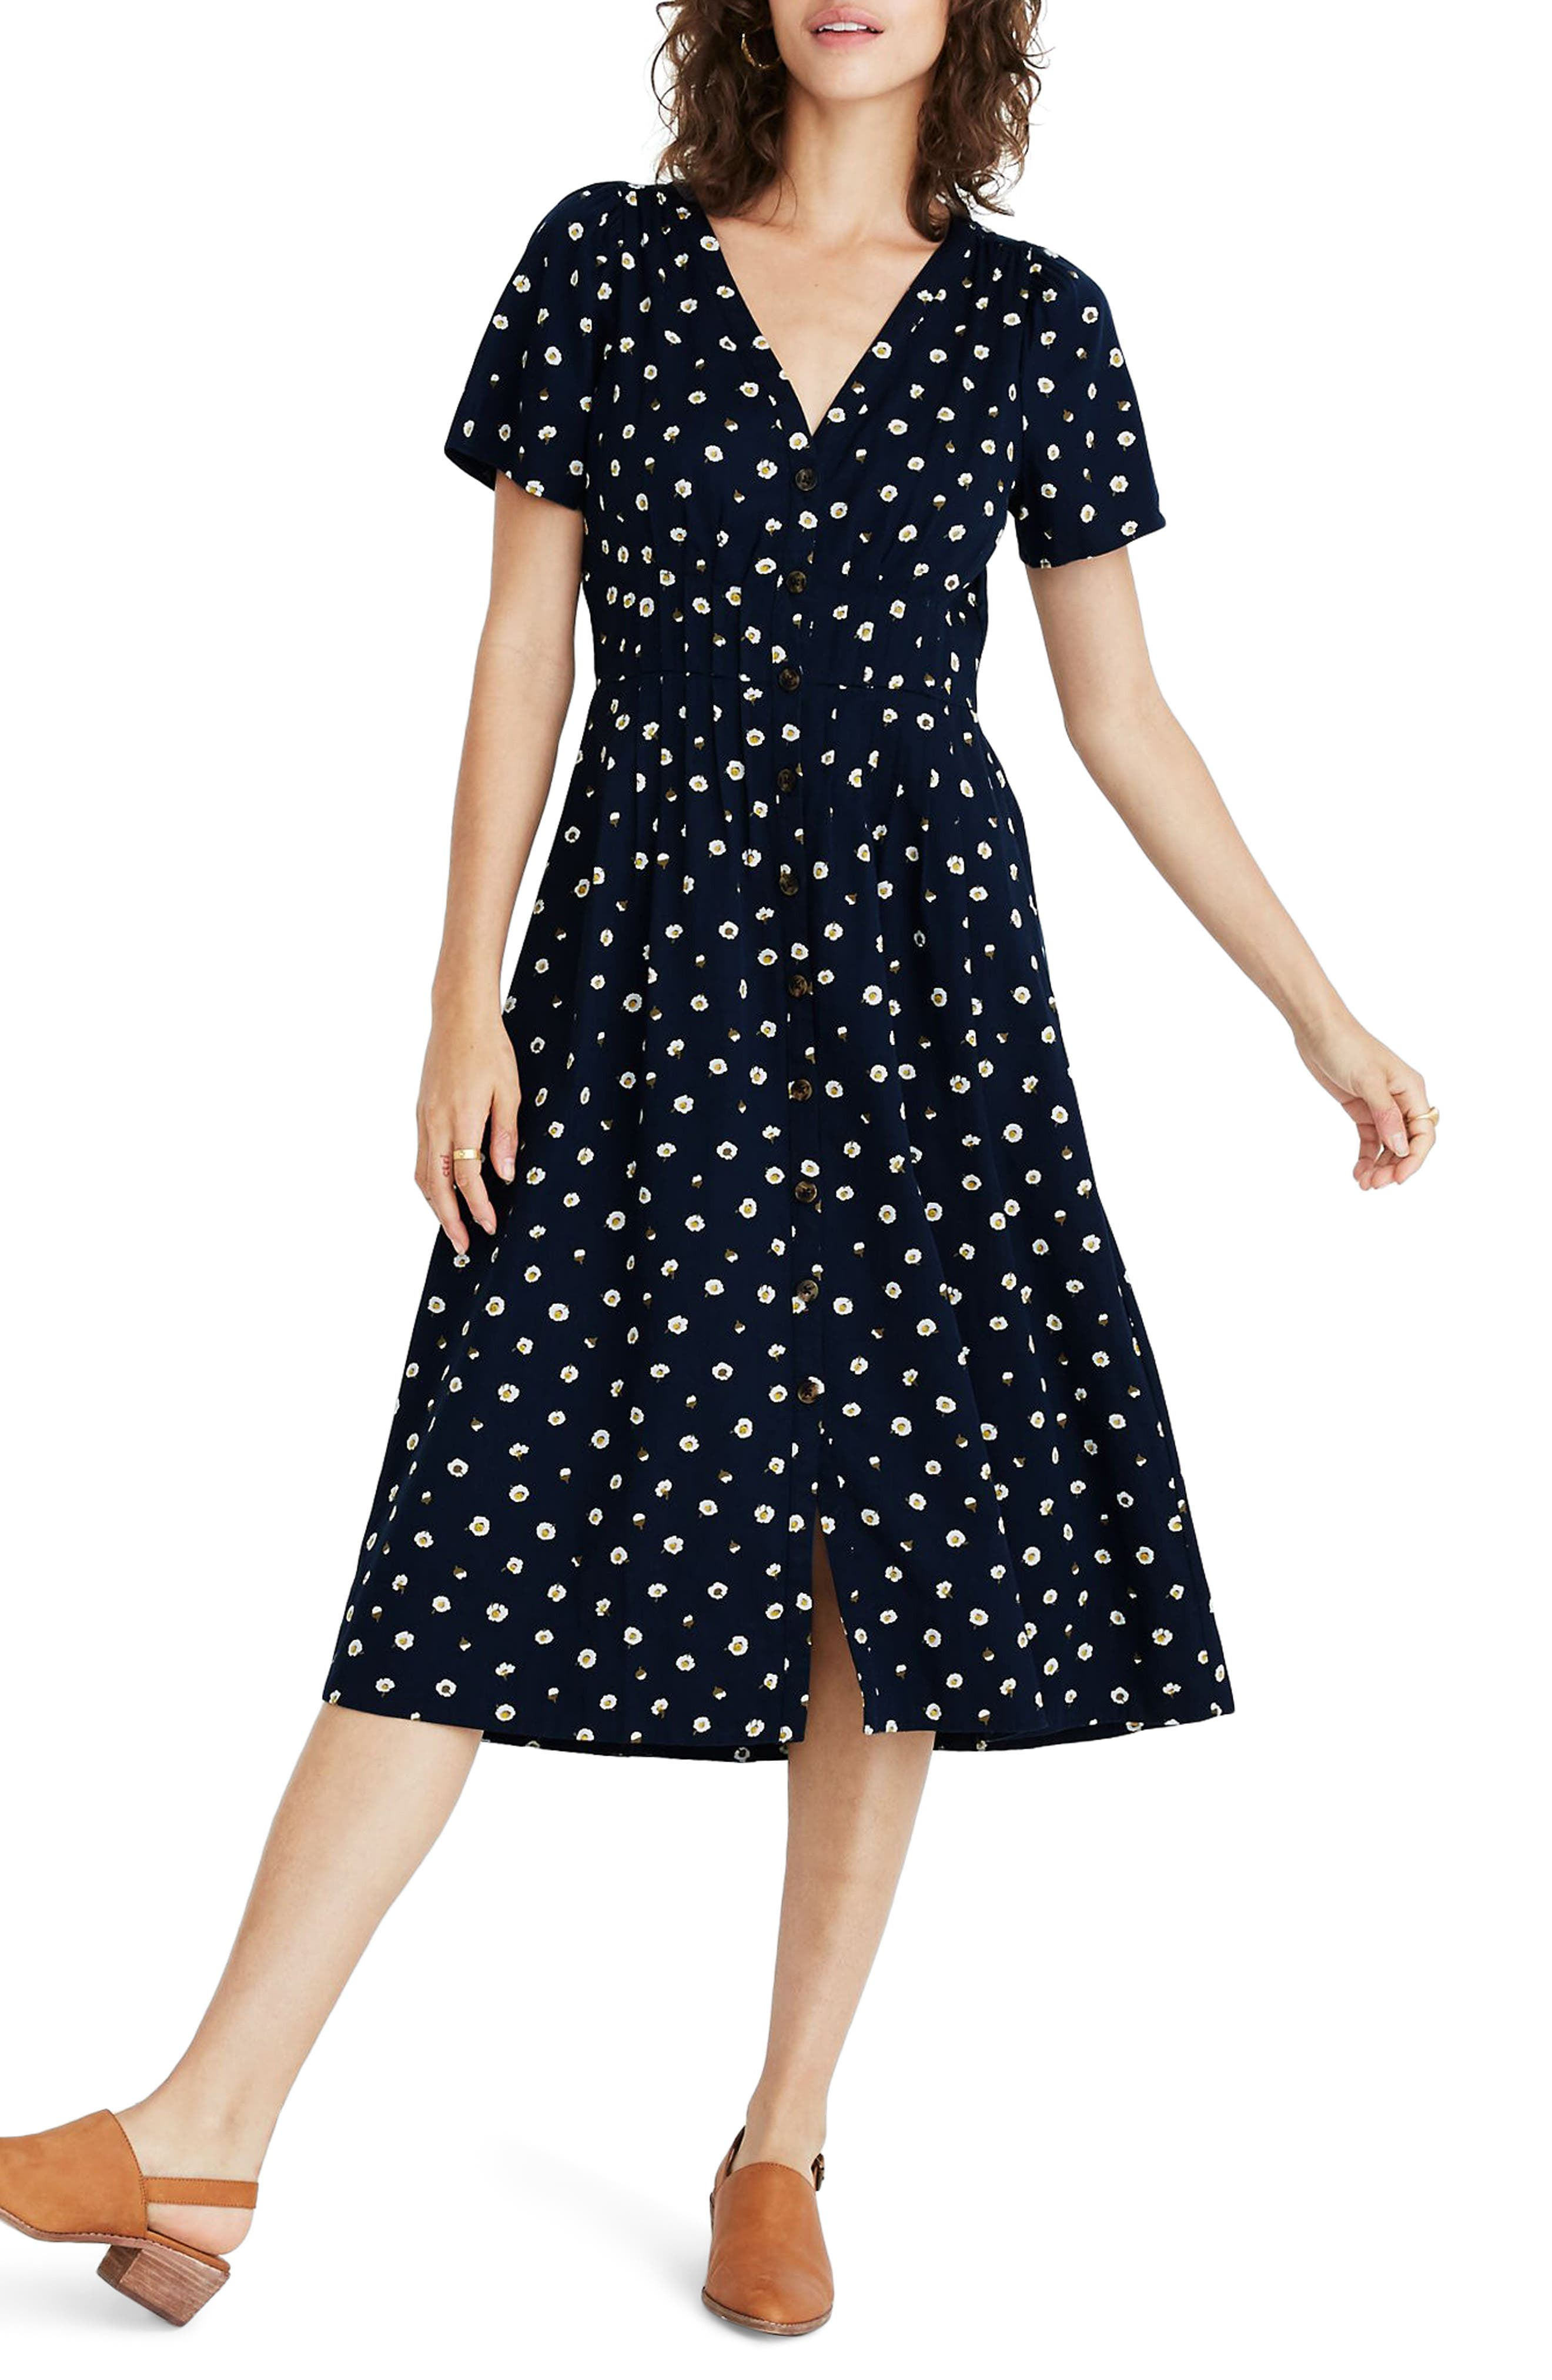 1930s Dresses | 30s Art Deco Dress Womens Madewell Daylily Midi Dress In Daisy Dots Size 18 similar to 16W - Blue $99.99 AT vintagedancer.com